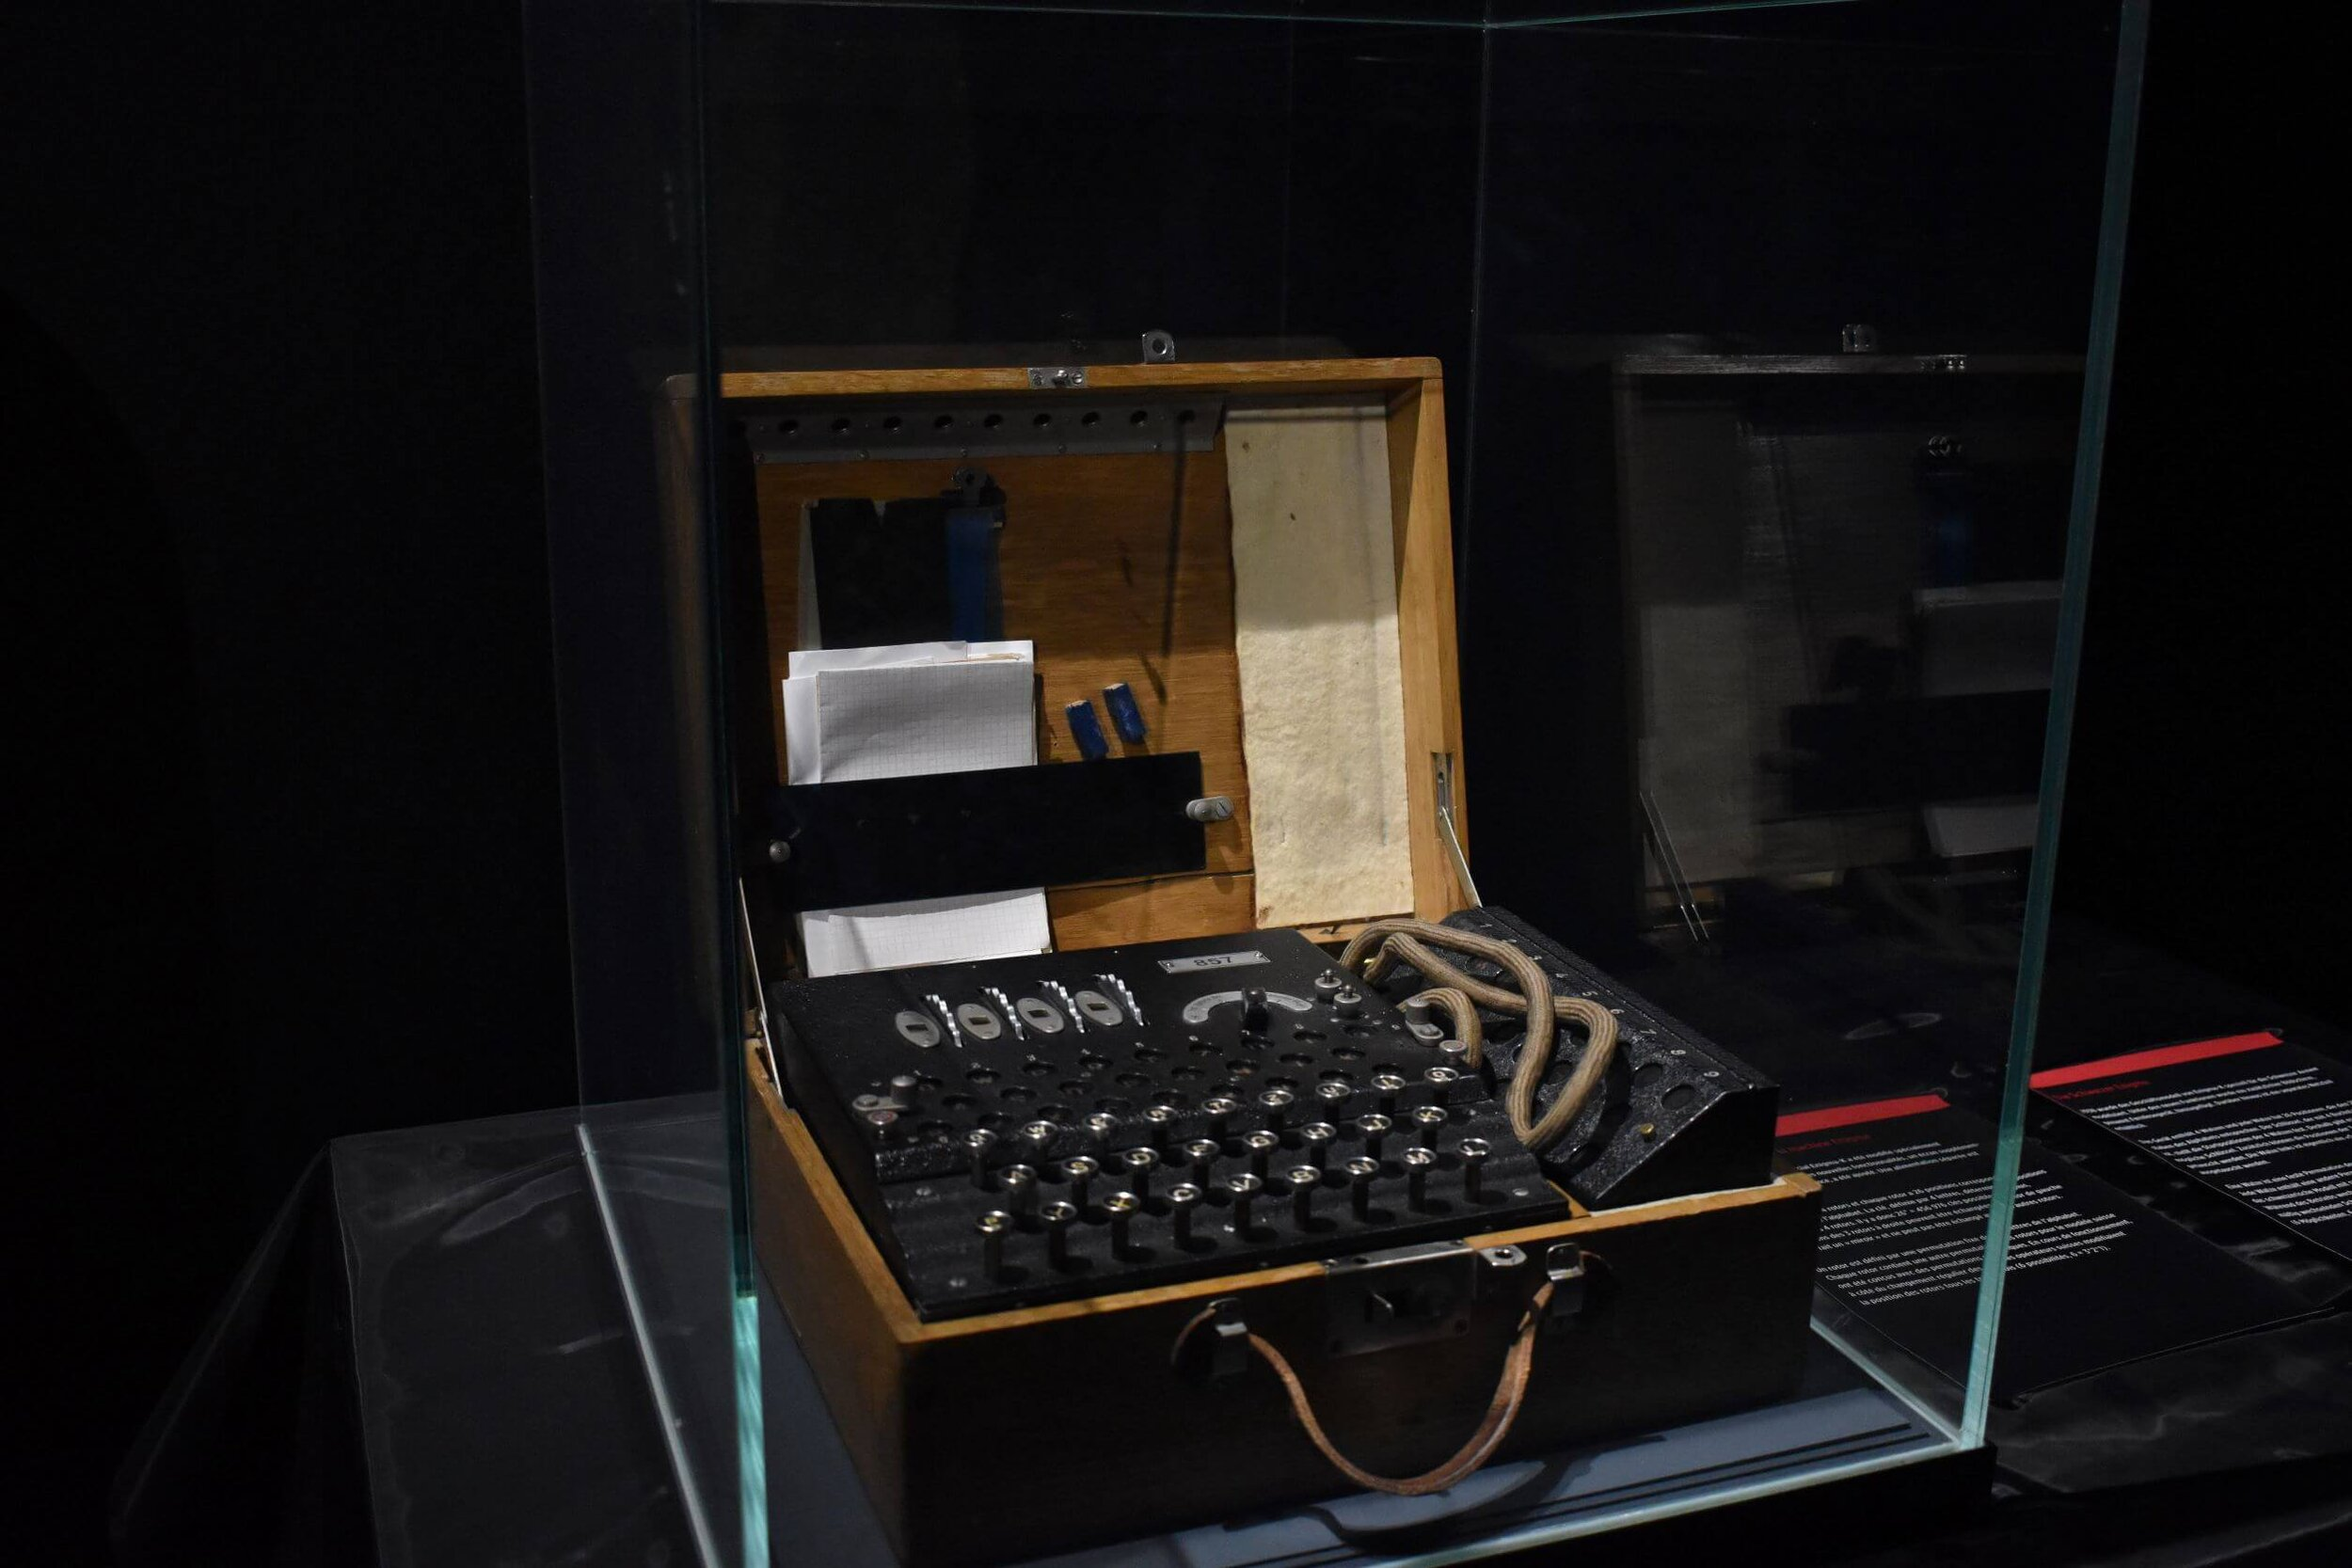 An old-fashioned, enigma encryption machine. These machines were popular in the early to mid-20th century.